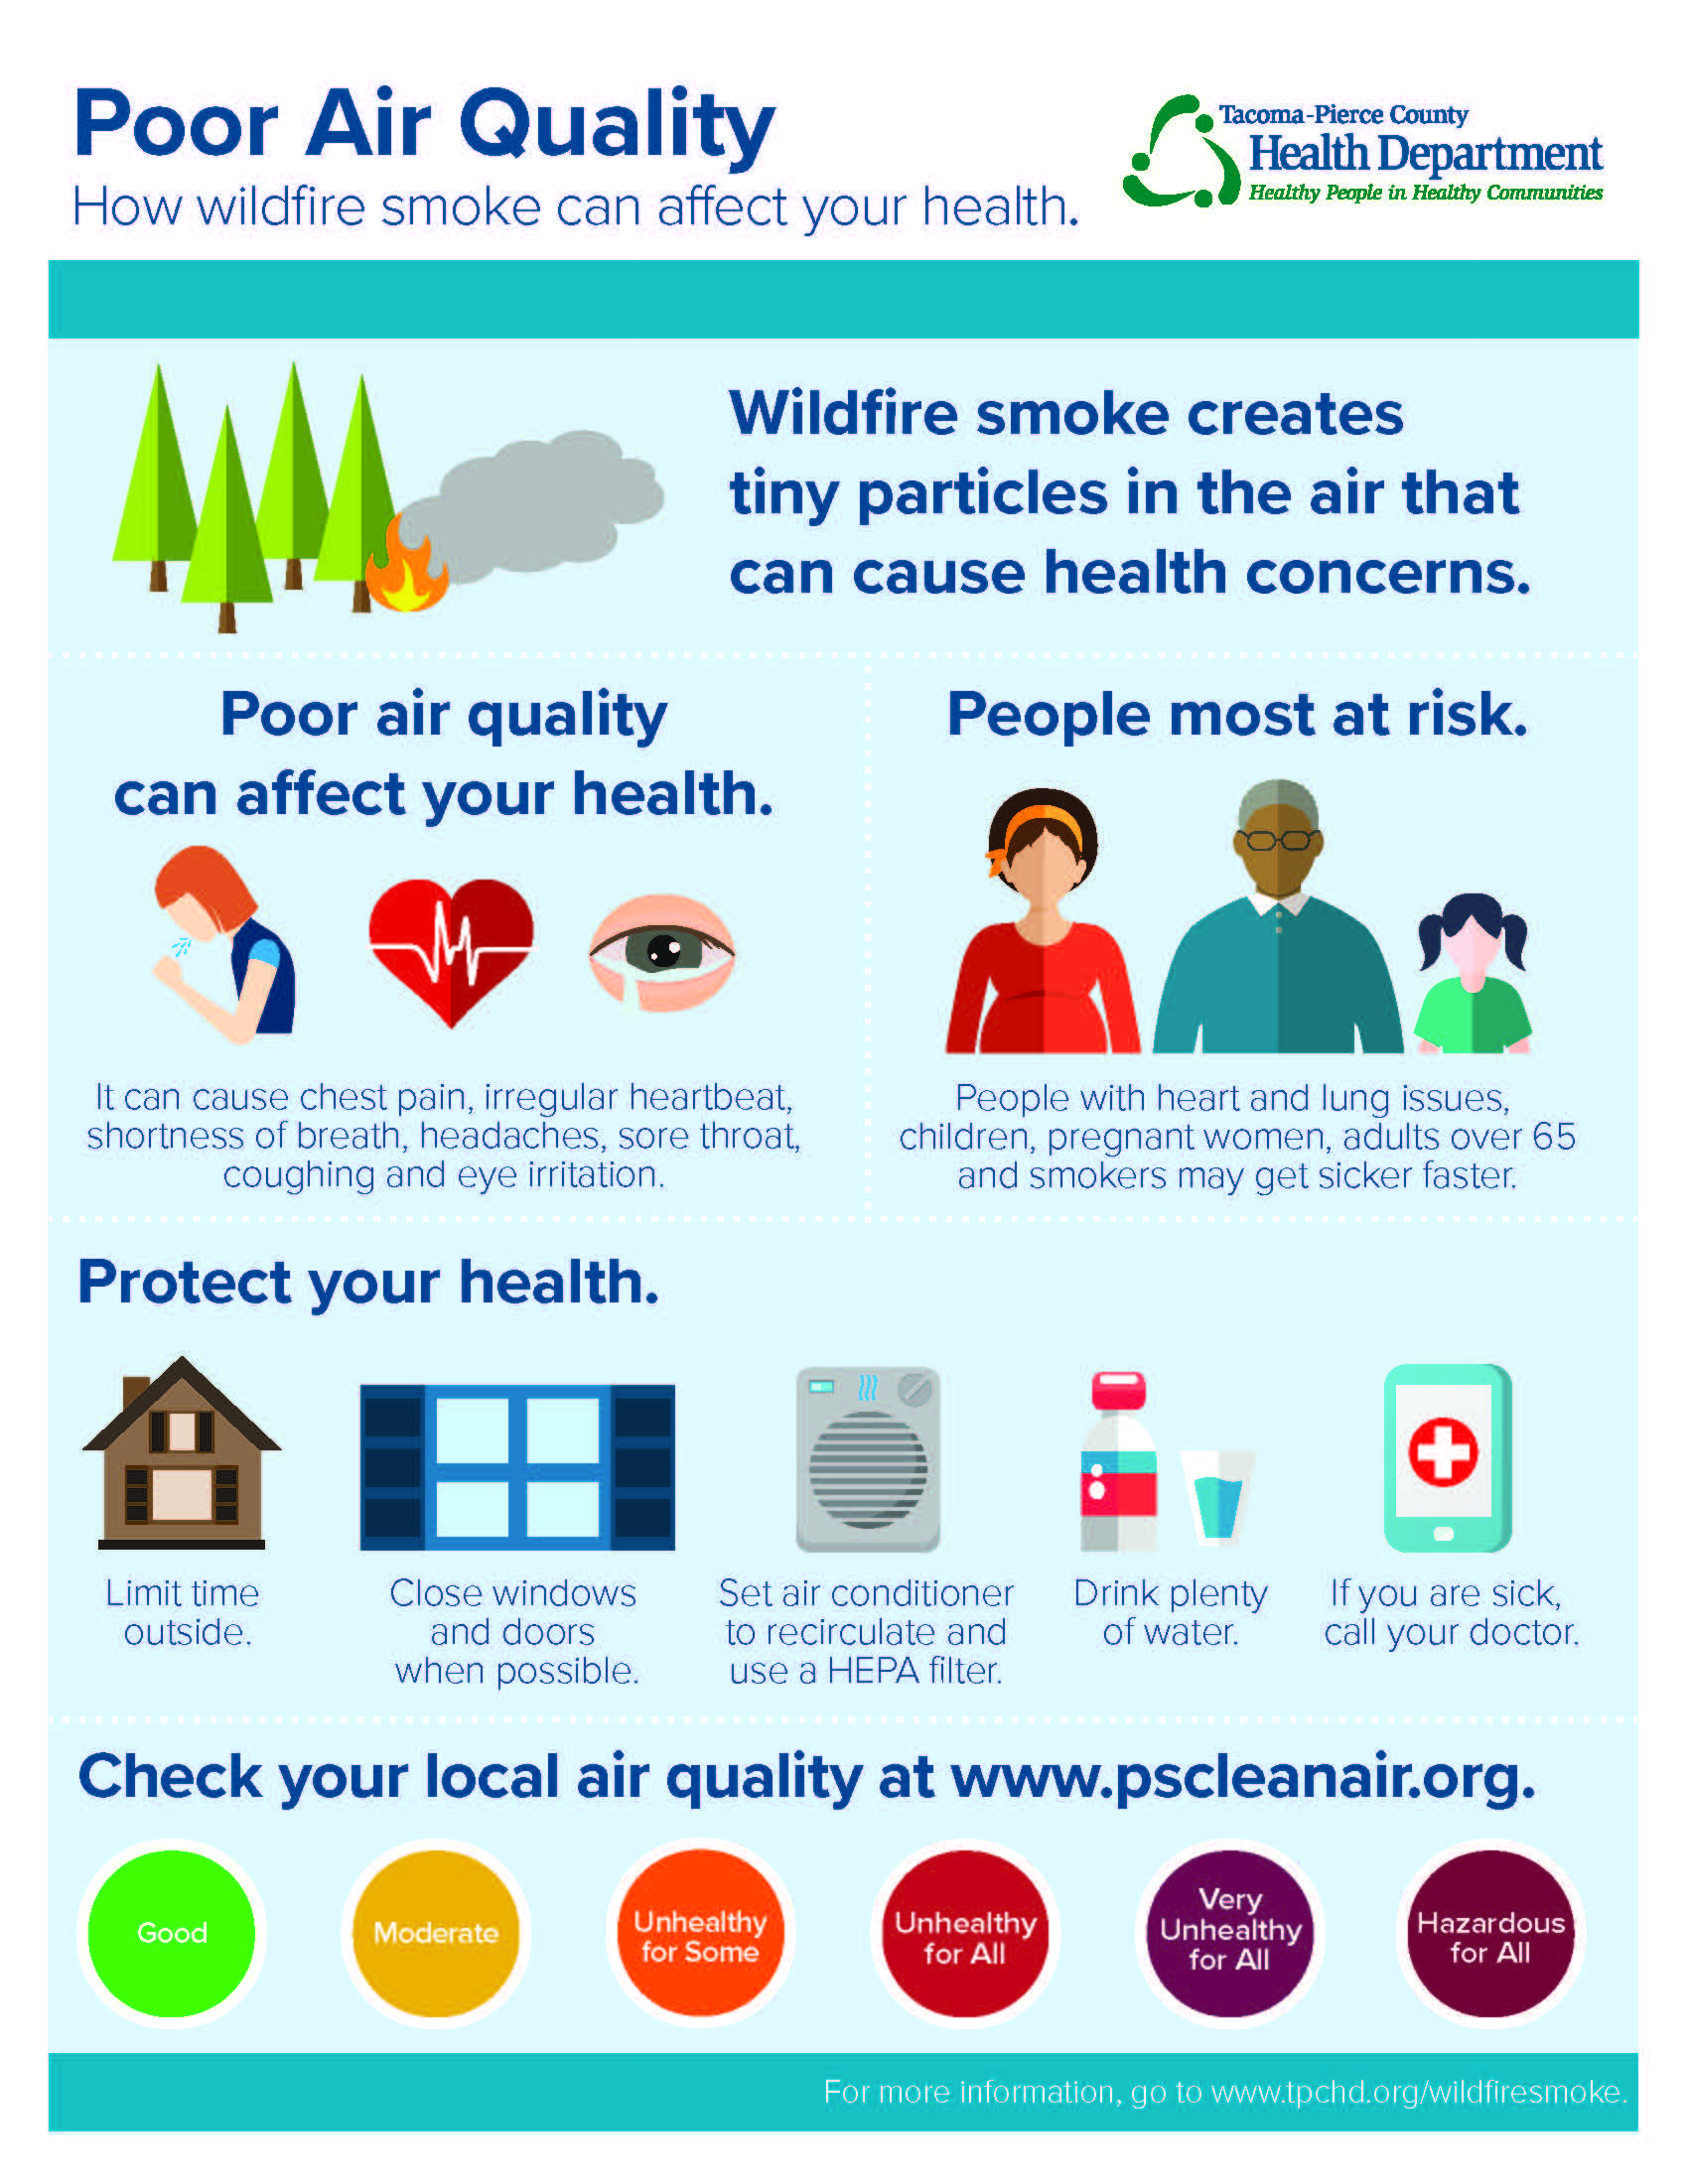 Guidance to protect yourself when wildfire smoke affects air quality.